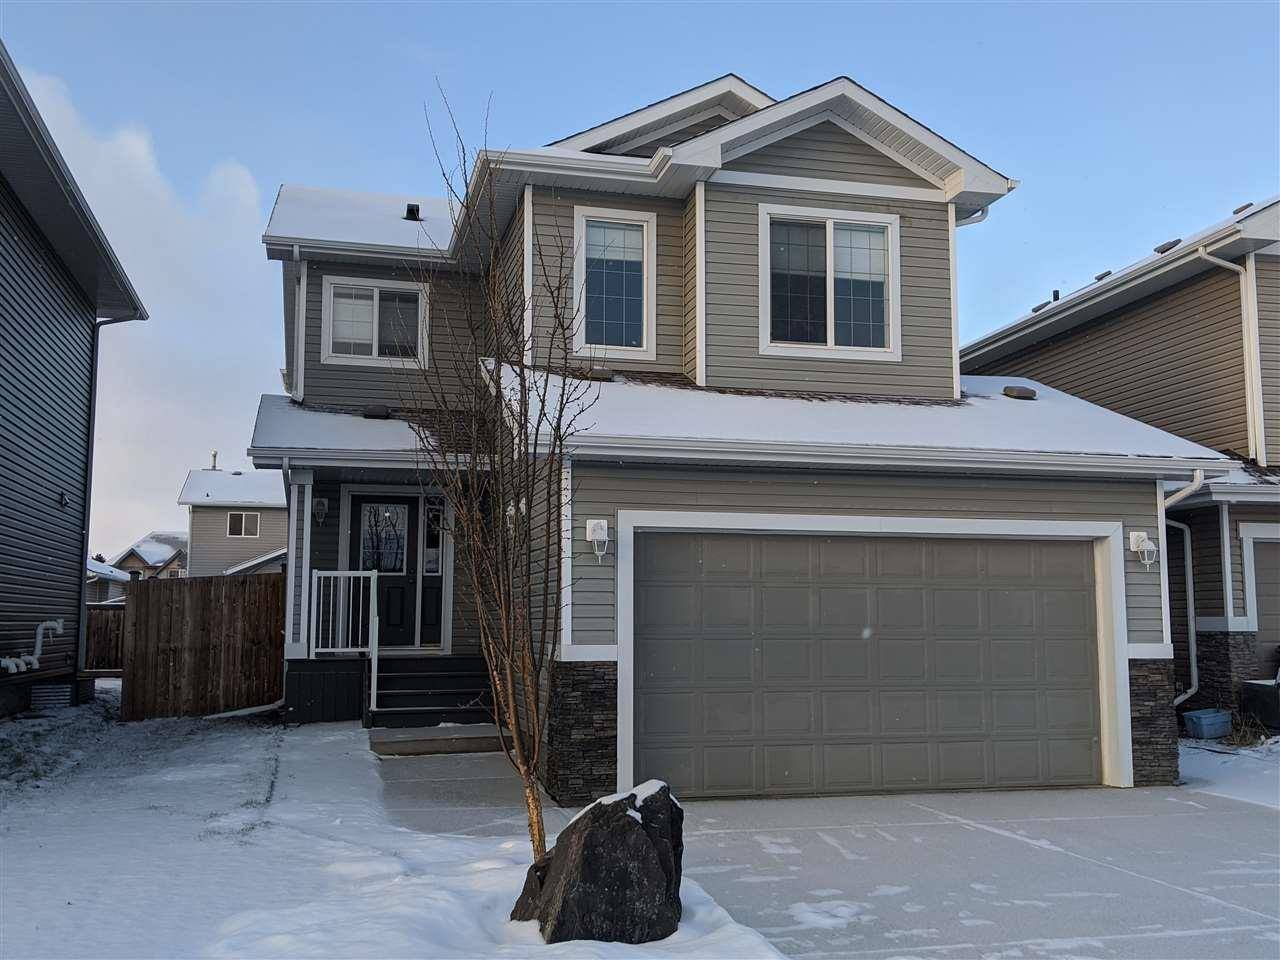 House for sale at 97 A Ave Unit 8904 Morinville Alberta - MLS: E4176423